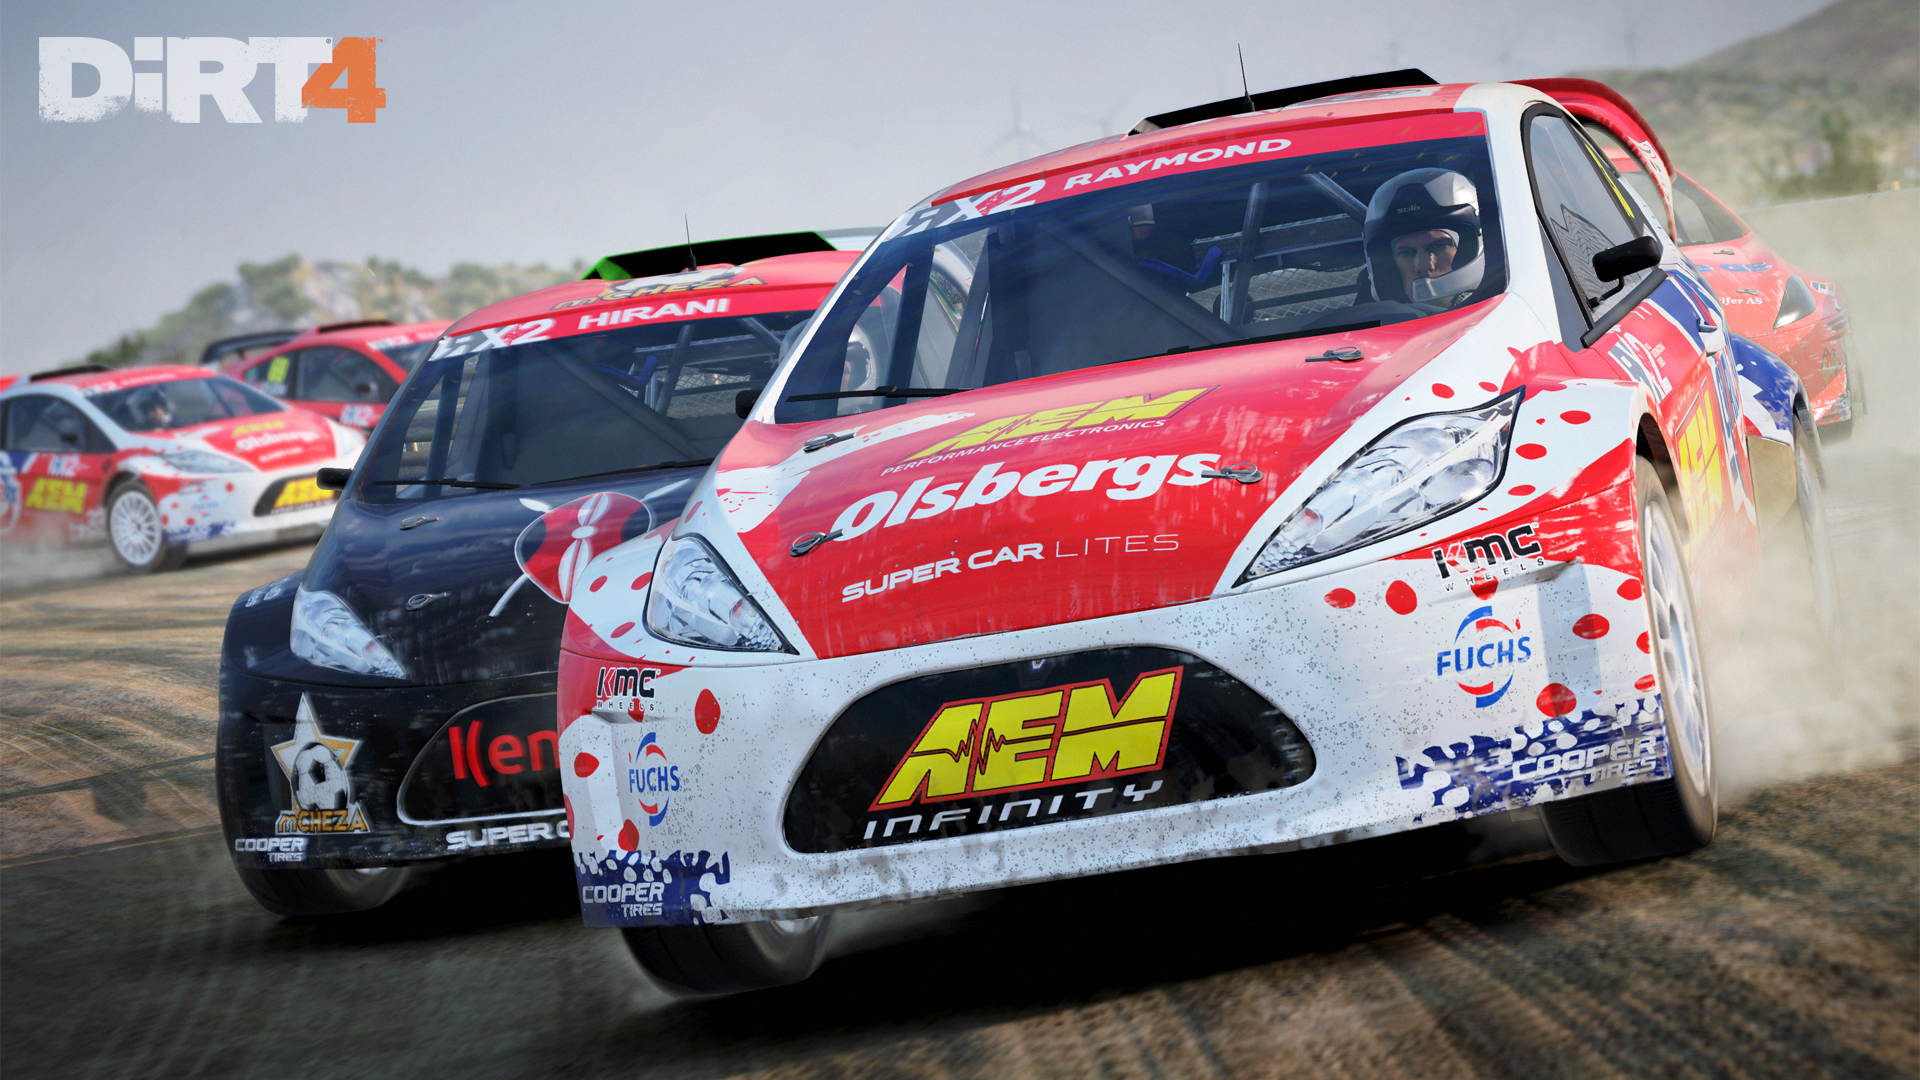 DiRT4 - screen - RX - Montalegre - front cars